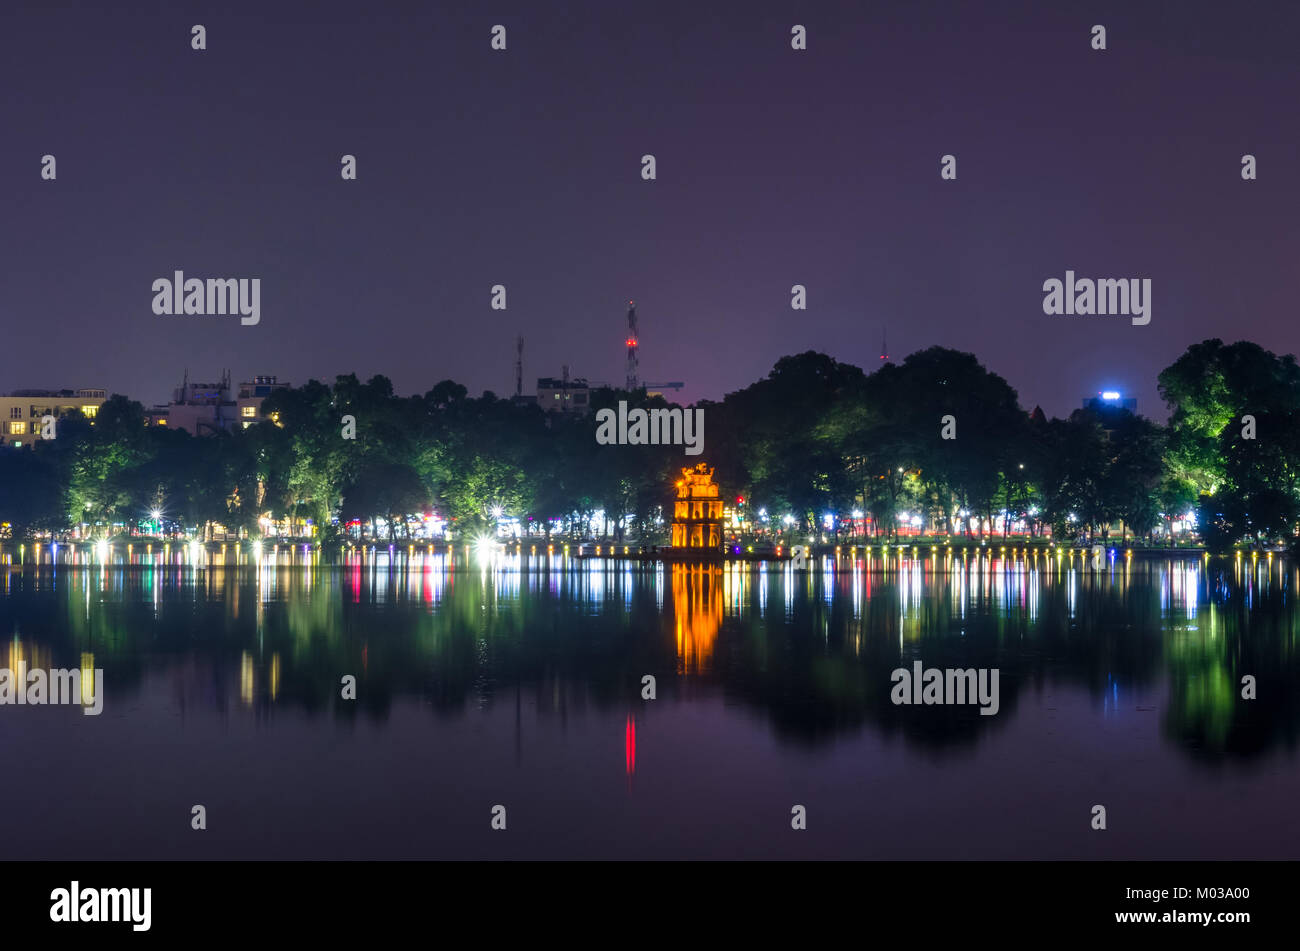 Night view of Turtle Tower or Tortoise tower which is located in the middle of the Hoan Kiem Lake. Hoan Kiem Lake - Stock Image